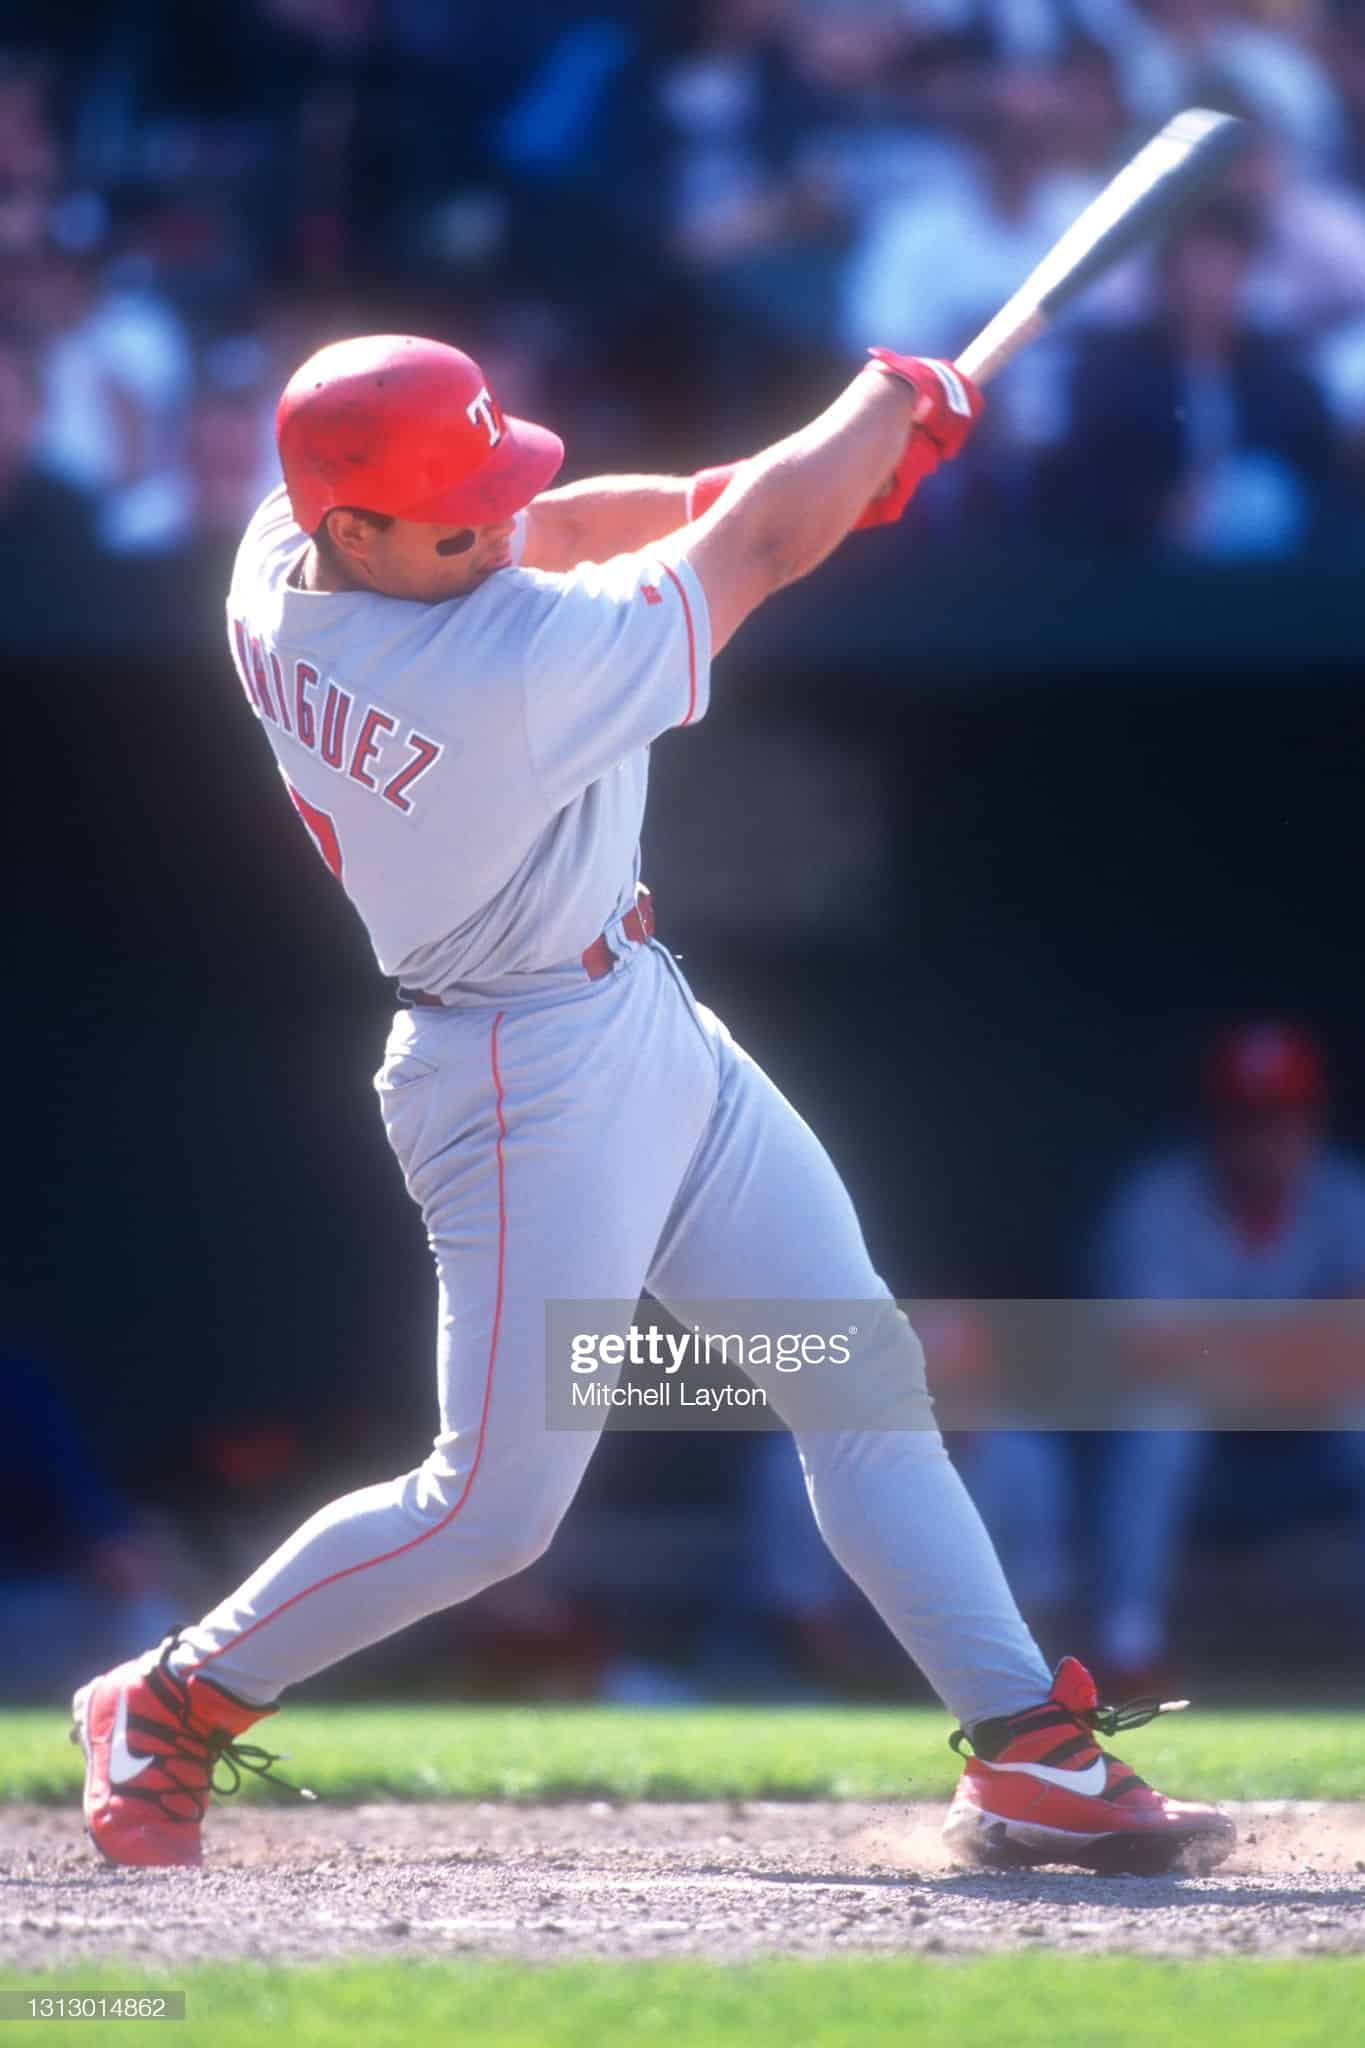 Ivan Rodriguez in 1996 at bat against the Orioles